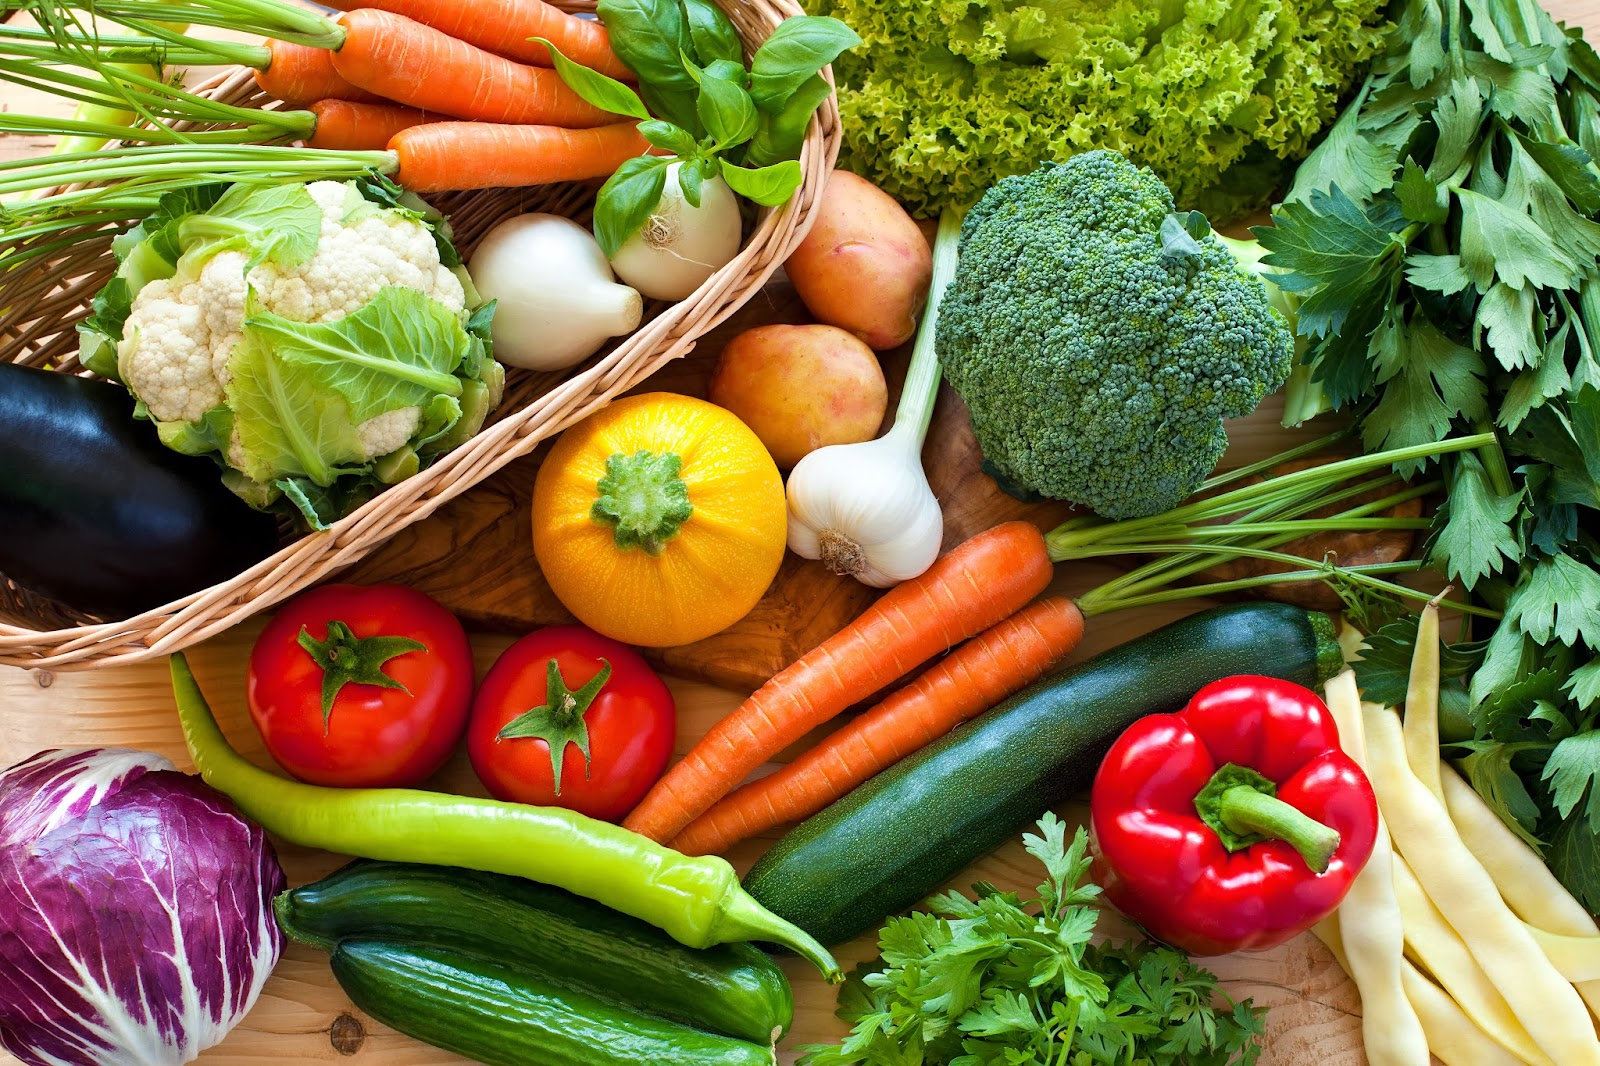 Top 10 vegetables for glowing skin get set blush for Beautiful vegetables